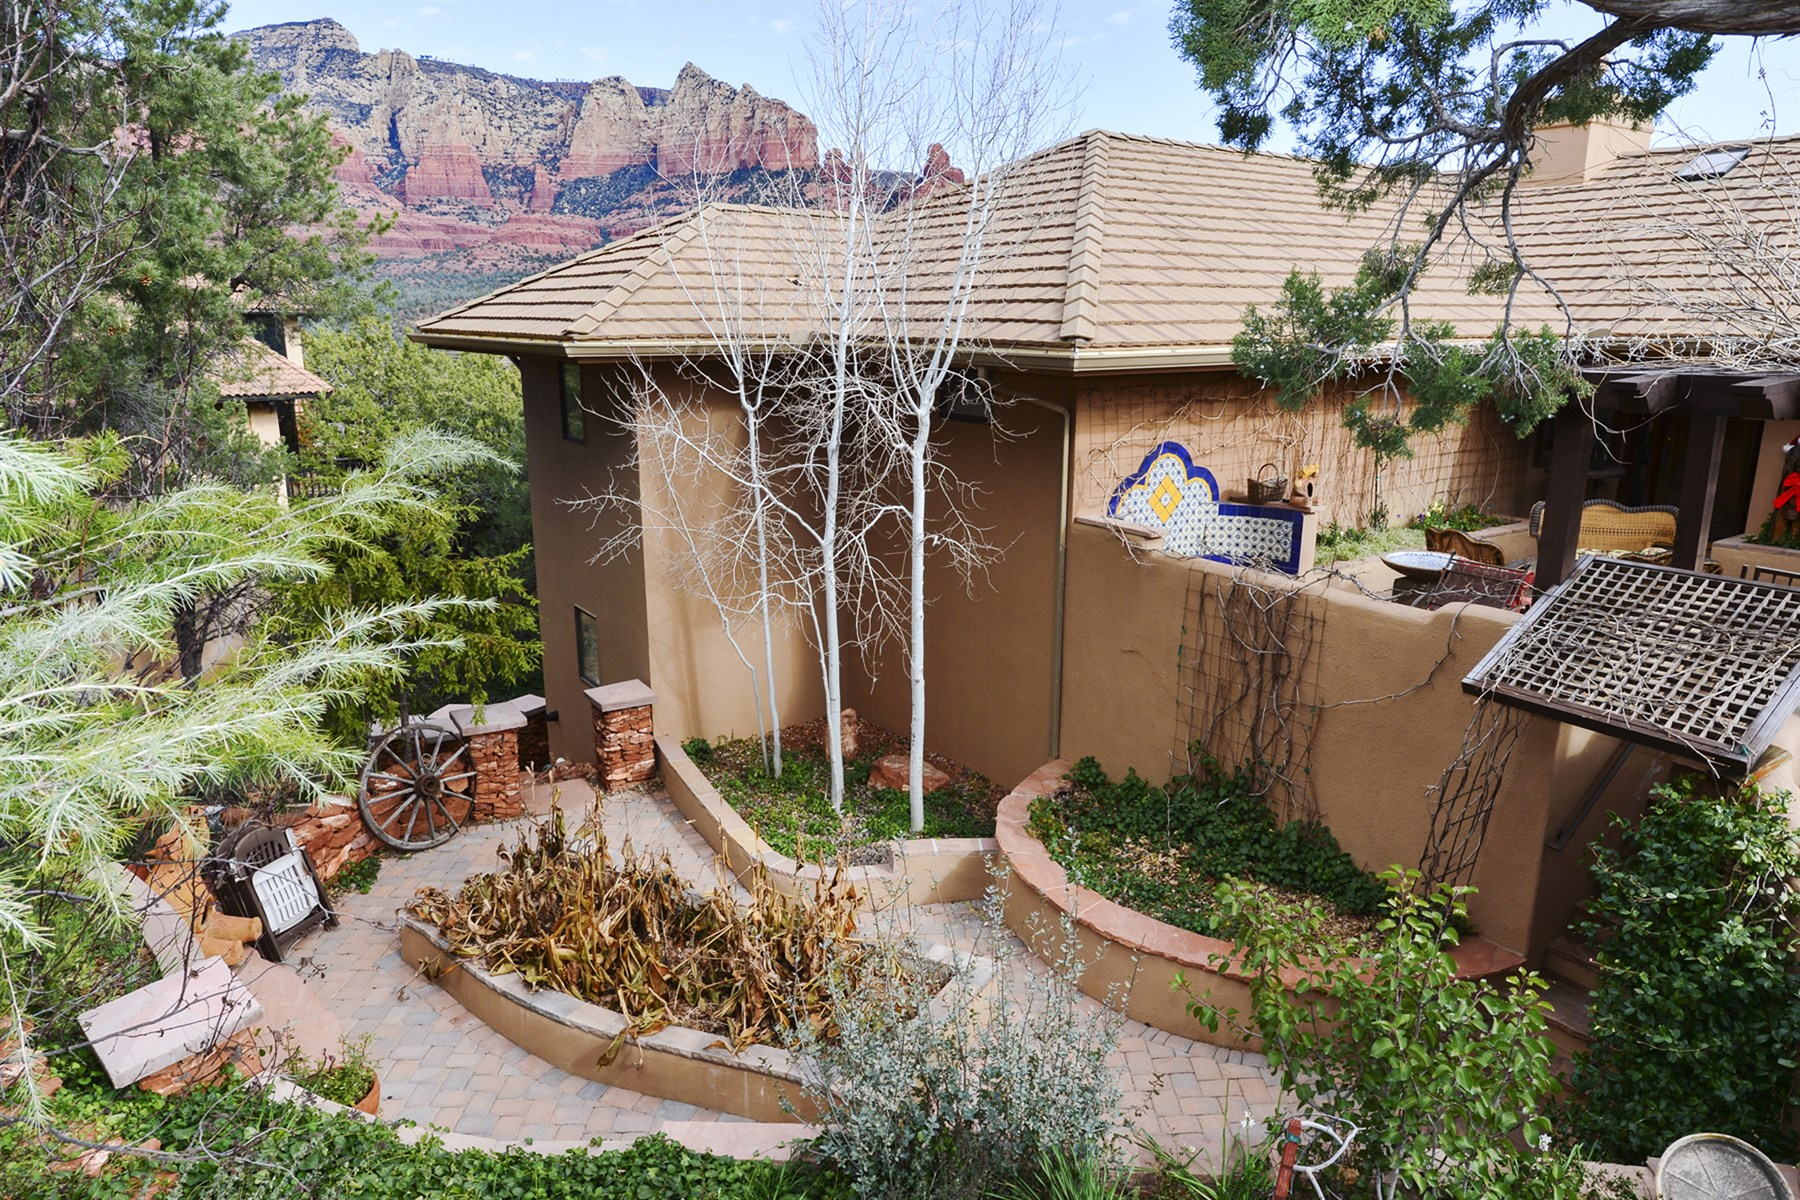 Single Family Home for Sale at Contemporary Spanish-style home was gloriously remodeled. 240 Ridge Rd Sedona, Arizona 86336 United States